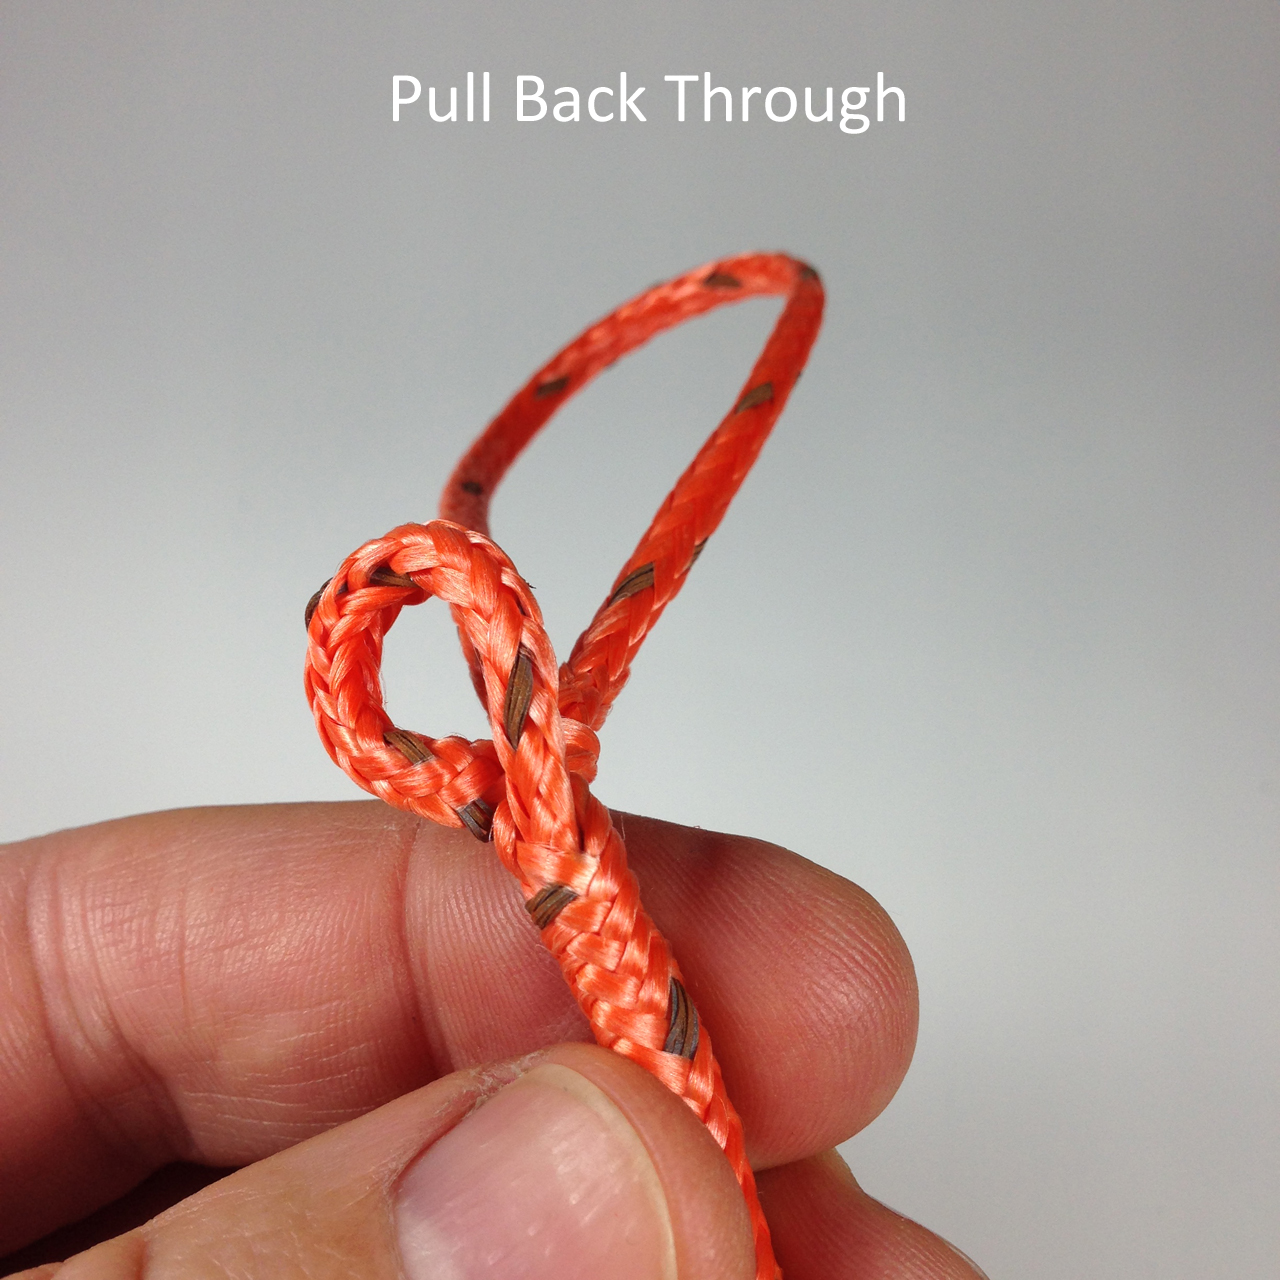 splicing-hook-9-pull-back-through.jpg